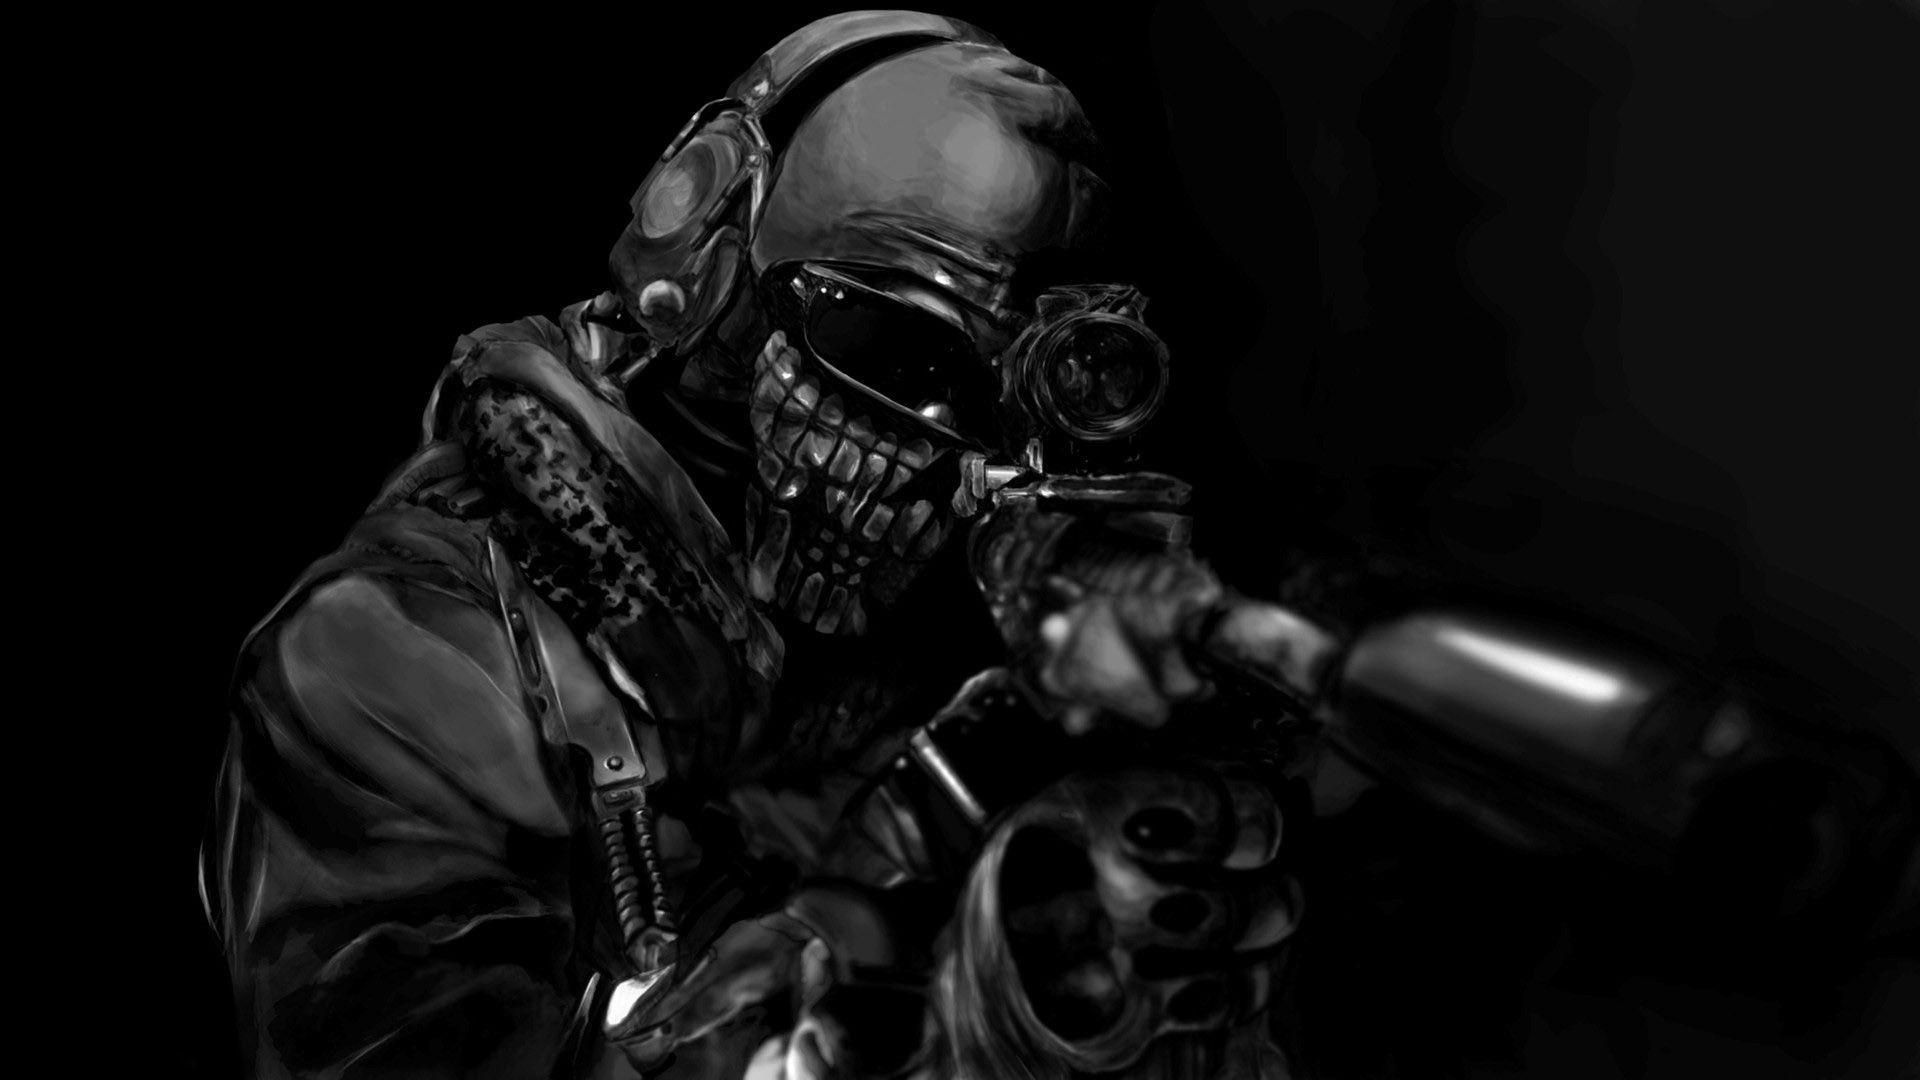 Call of Duty 4 Black Ops from Call of